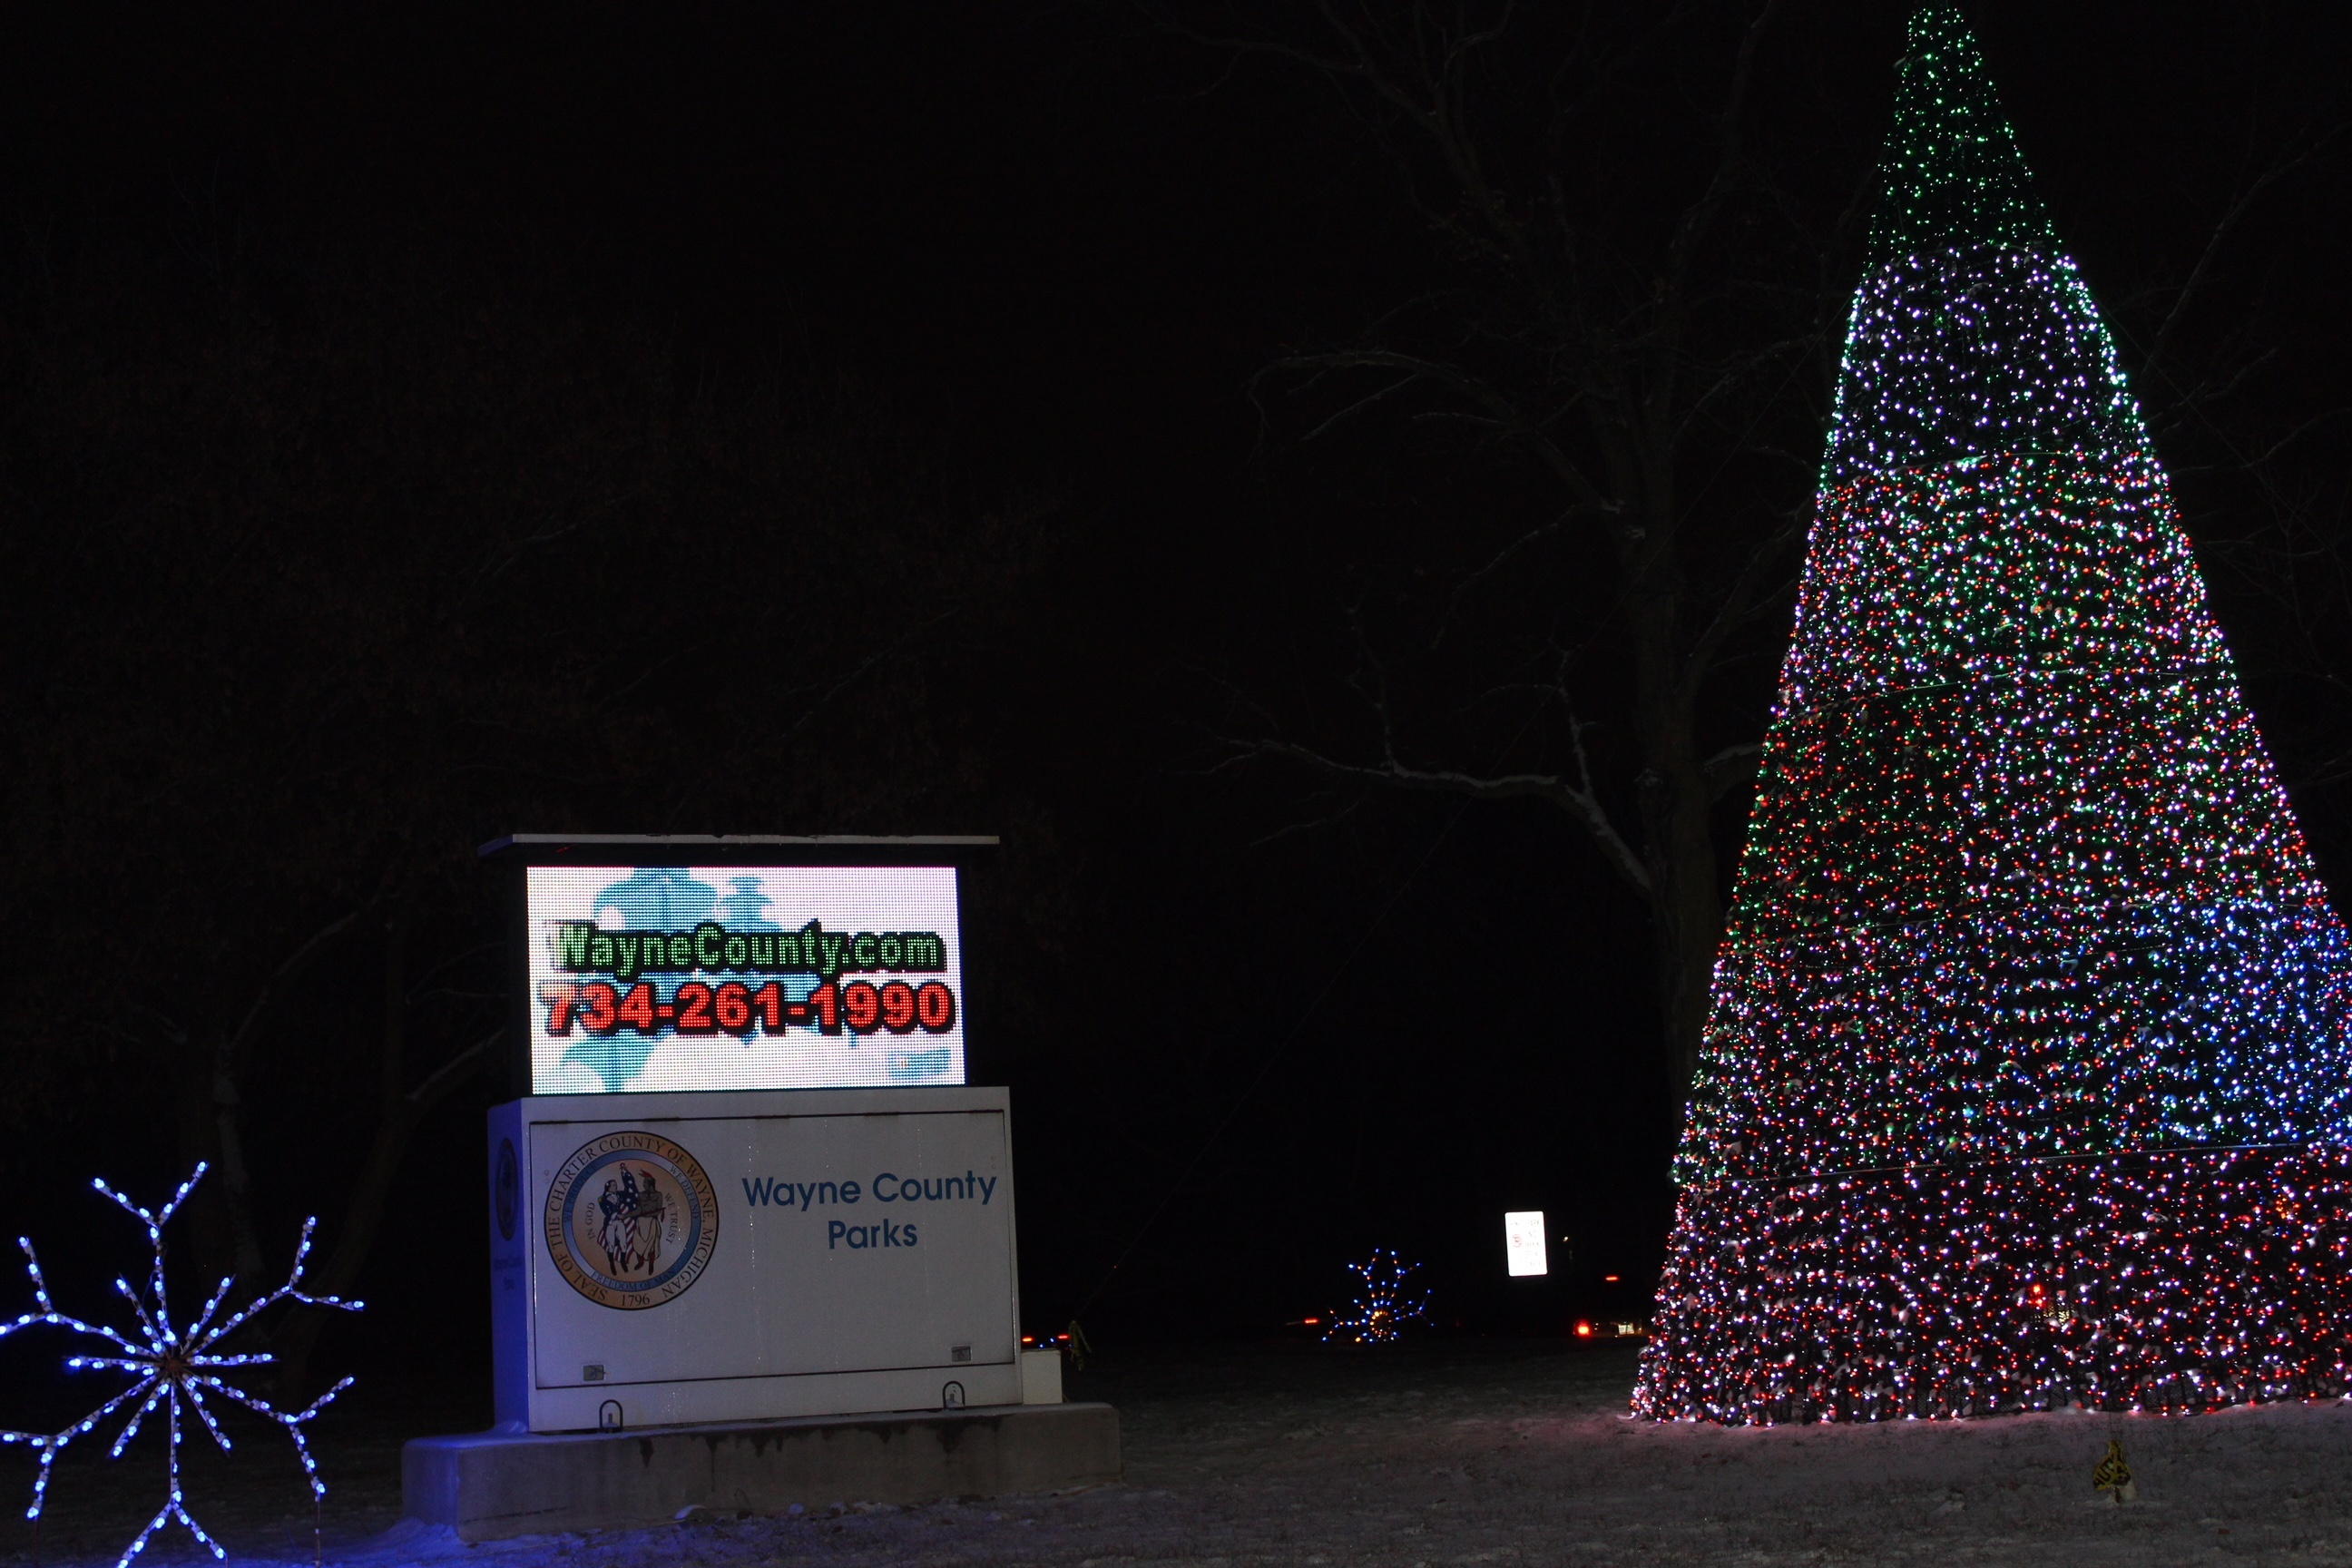 Wayne County Parks Use LED Displays to Communicate With Customers